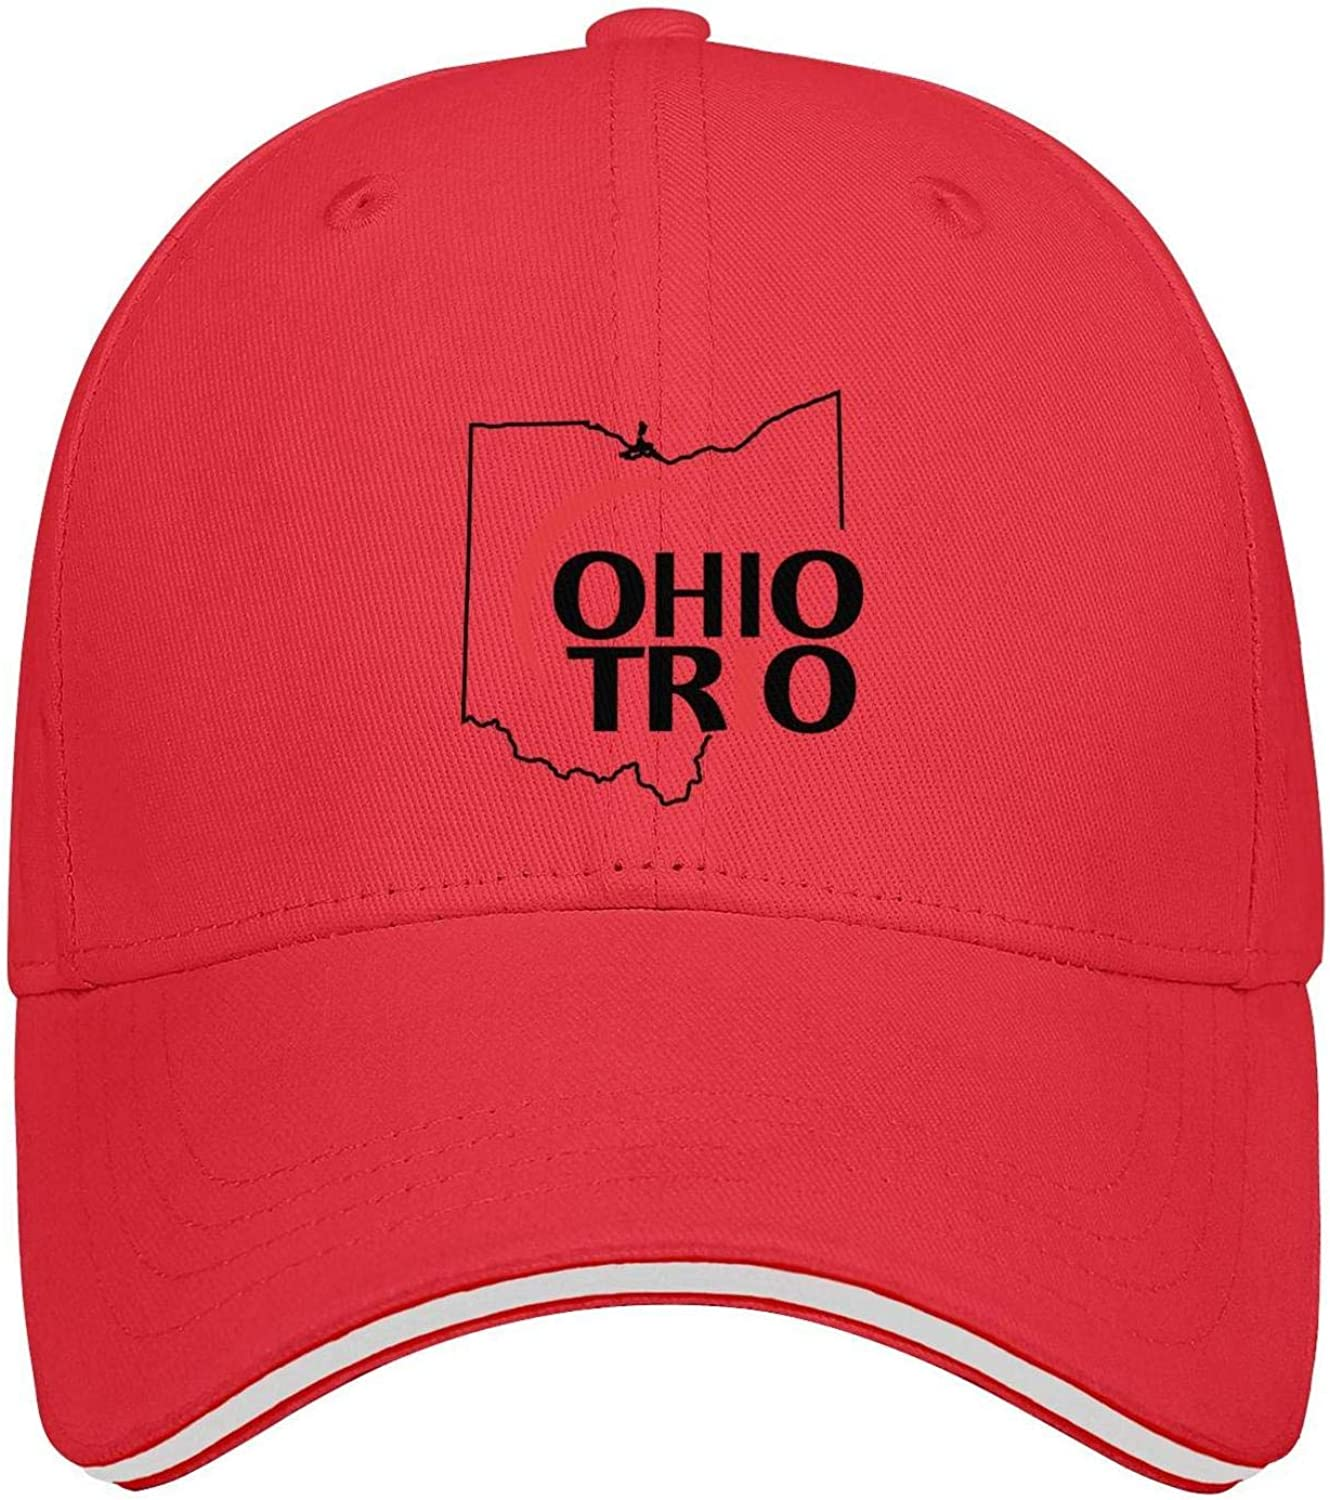 Evelth Sandwich Baseball Hat Baseball Caps Ohio Trio Unisex Snapback Adjustable Hat